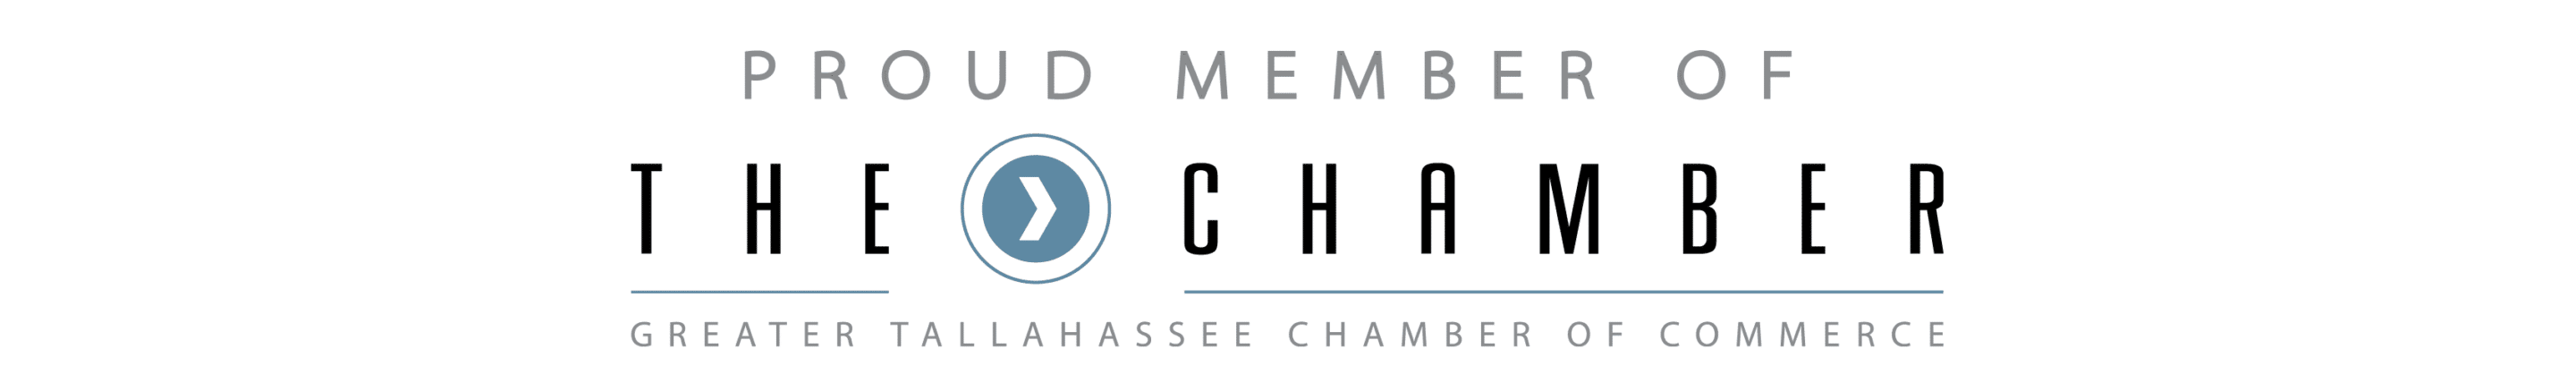 Tallahassee Chamber of Commerce Logo